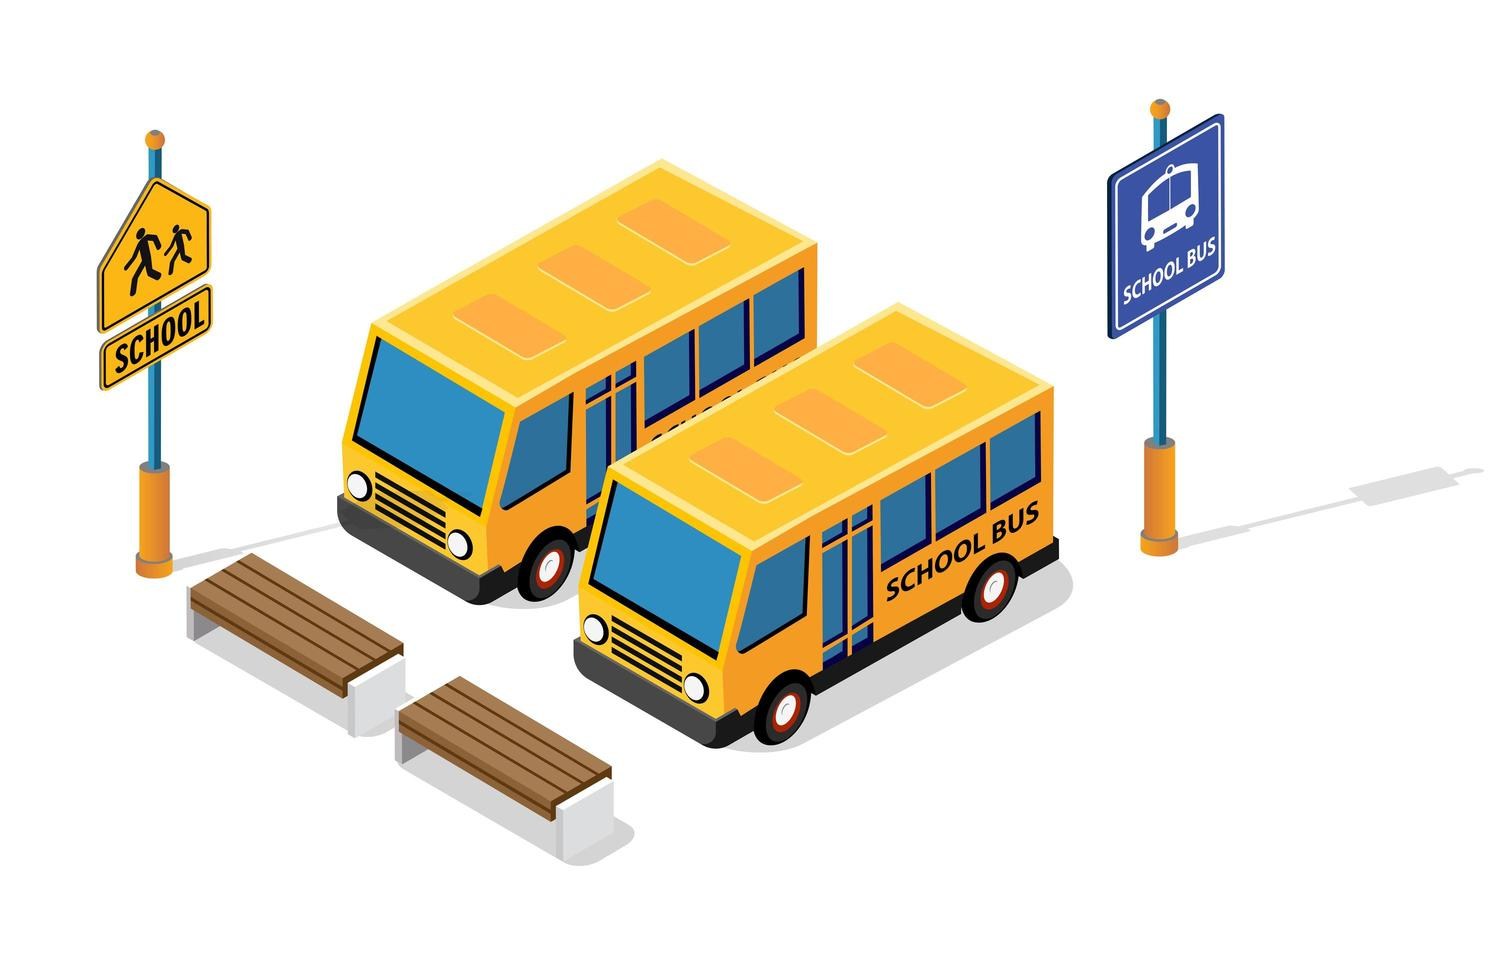 School bus on the street parking lot for schoolchildren and students. Vector illustration of study education.